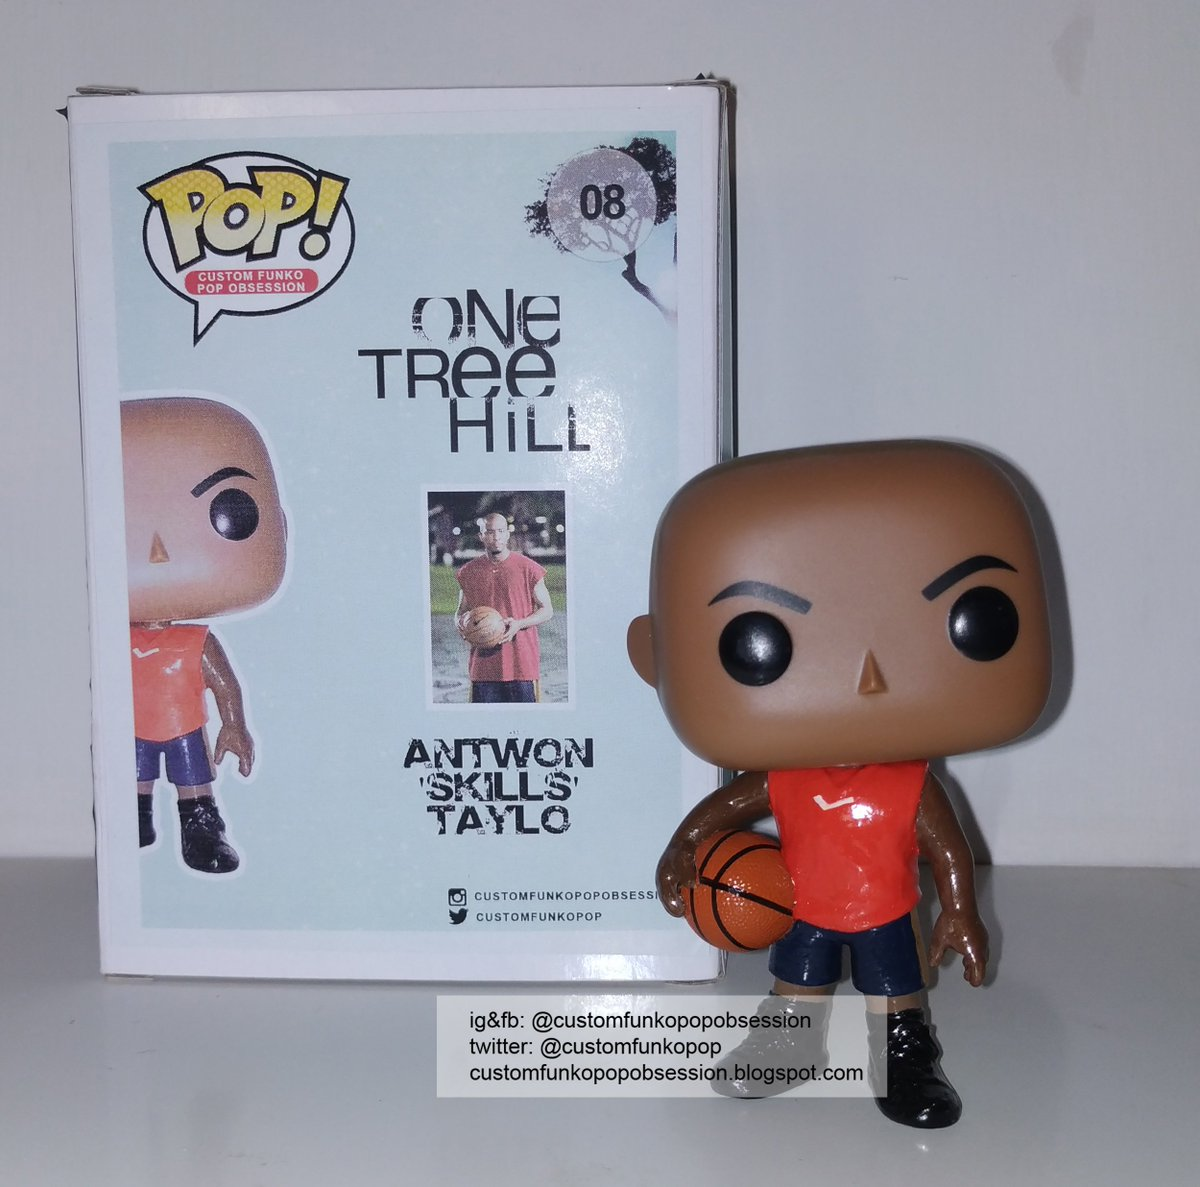 our custom funko pop of Antwon 'Skills' Taylor (Antwon Tanner) from One Tree Hill.  http://customfunkopopobsession.blogspot.com/2019/07/one-tree-hill-custom-funko-pop-of_26.html …  If you're interested in buying, send a dm.#FunkoPop #CustomPop #PopVinyl #CustomFunkoPop #CustomBox } [#OnceTreeHill #AntwonTanner #AntwonTaylor @antwon_tannerpic.twitter.com/BRUn21Uqc4